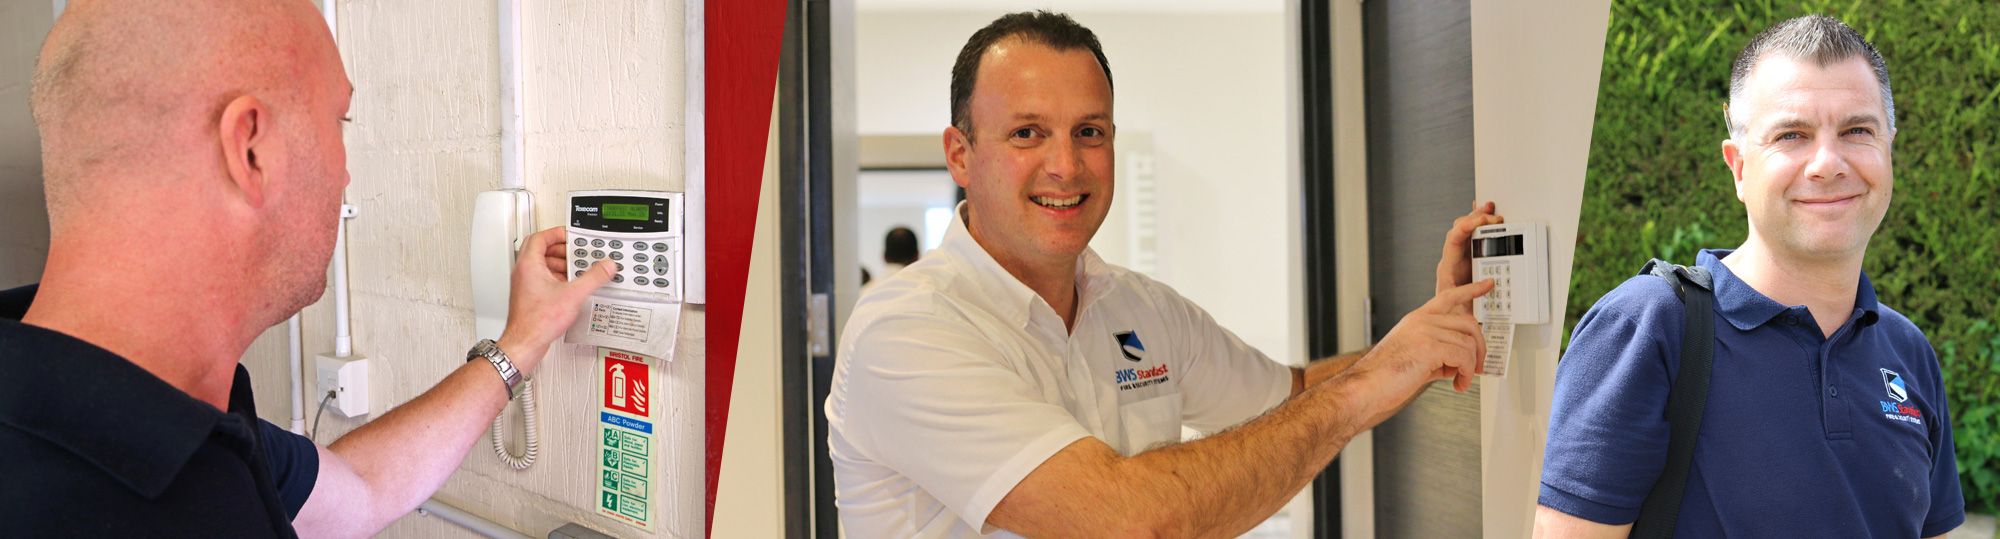 Security Installers Bath